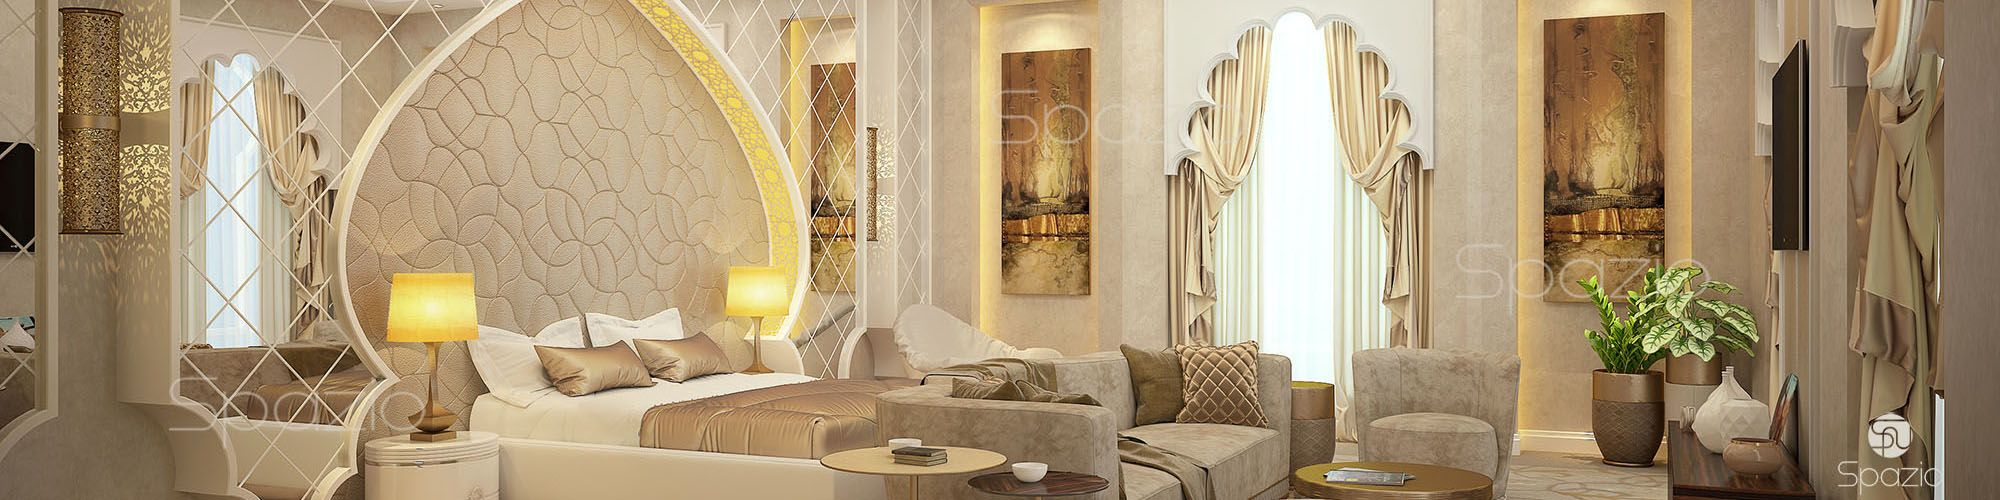 luxury interior design in Dubai UAE spazio